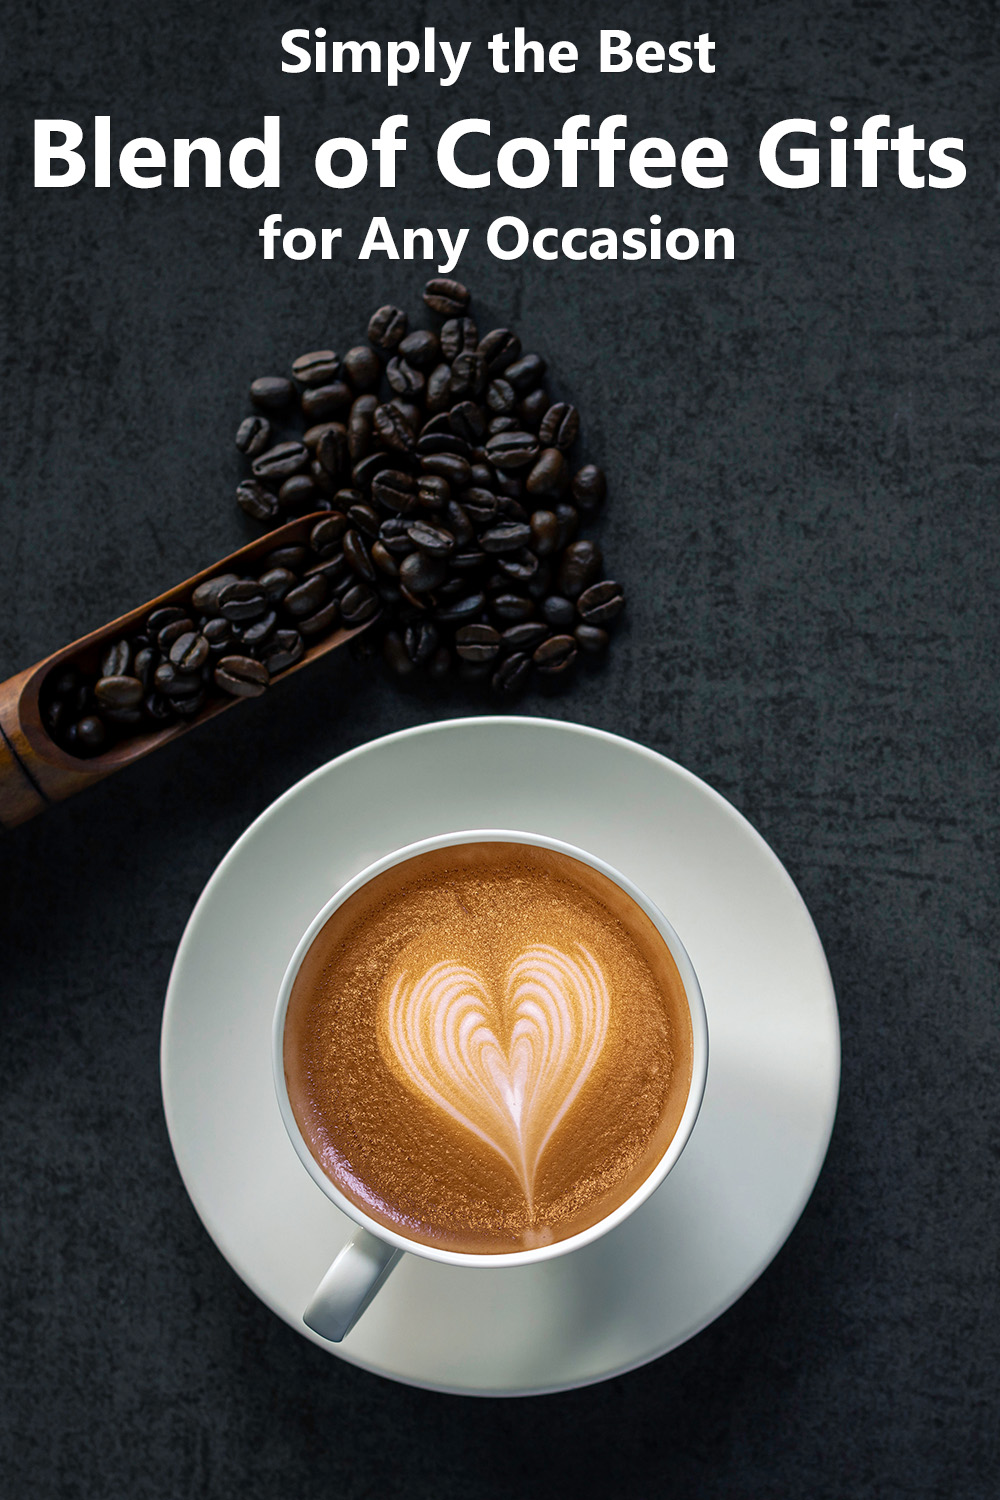 Simply the Best Blend of Coffee Gifts for Any Occasion social